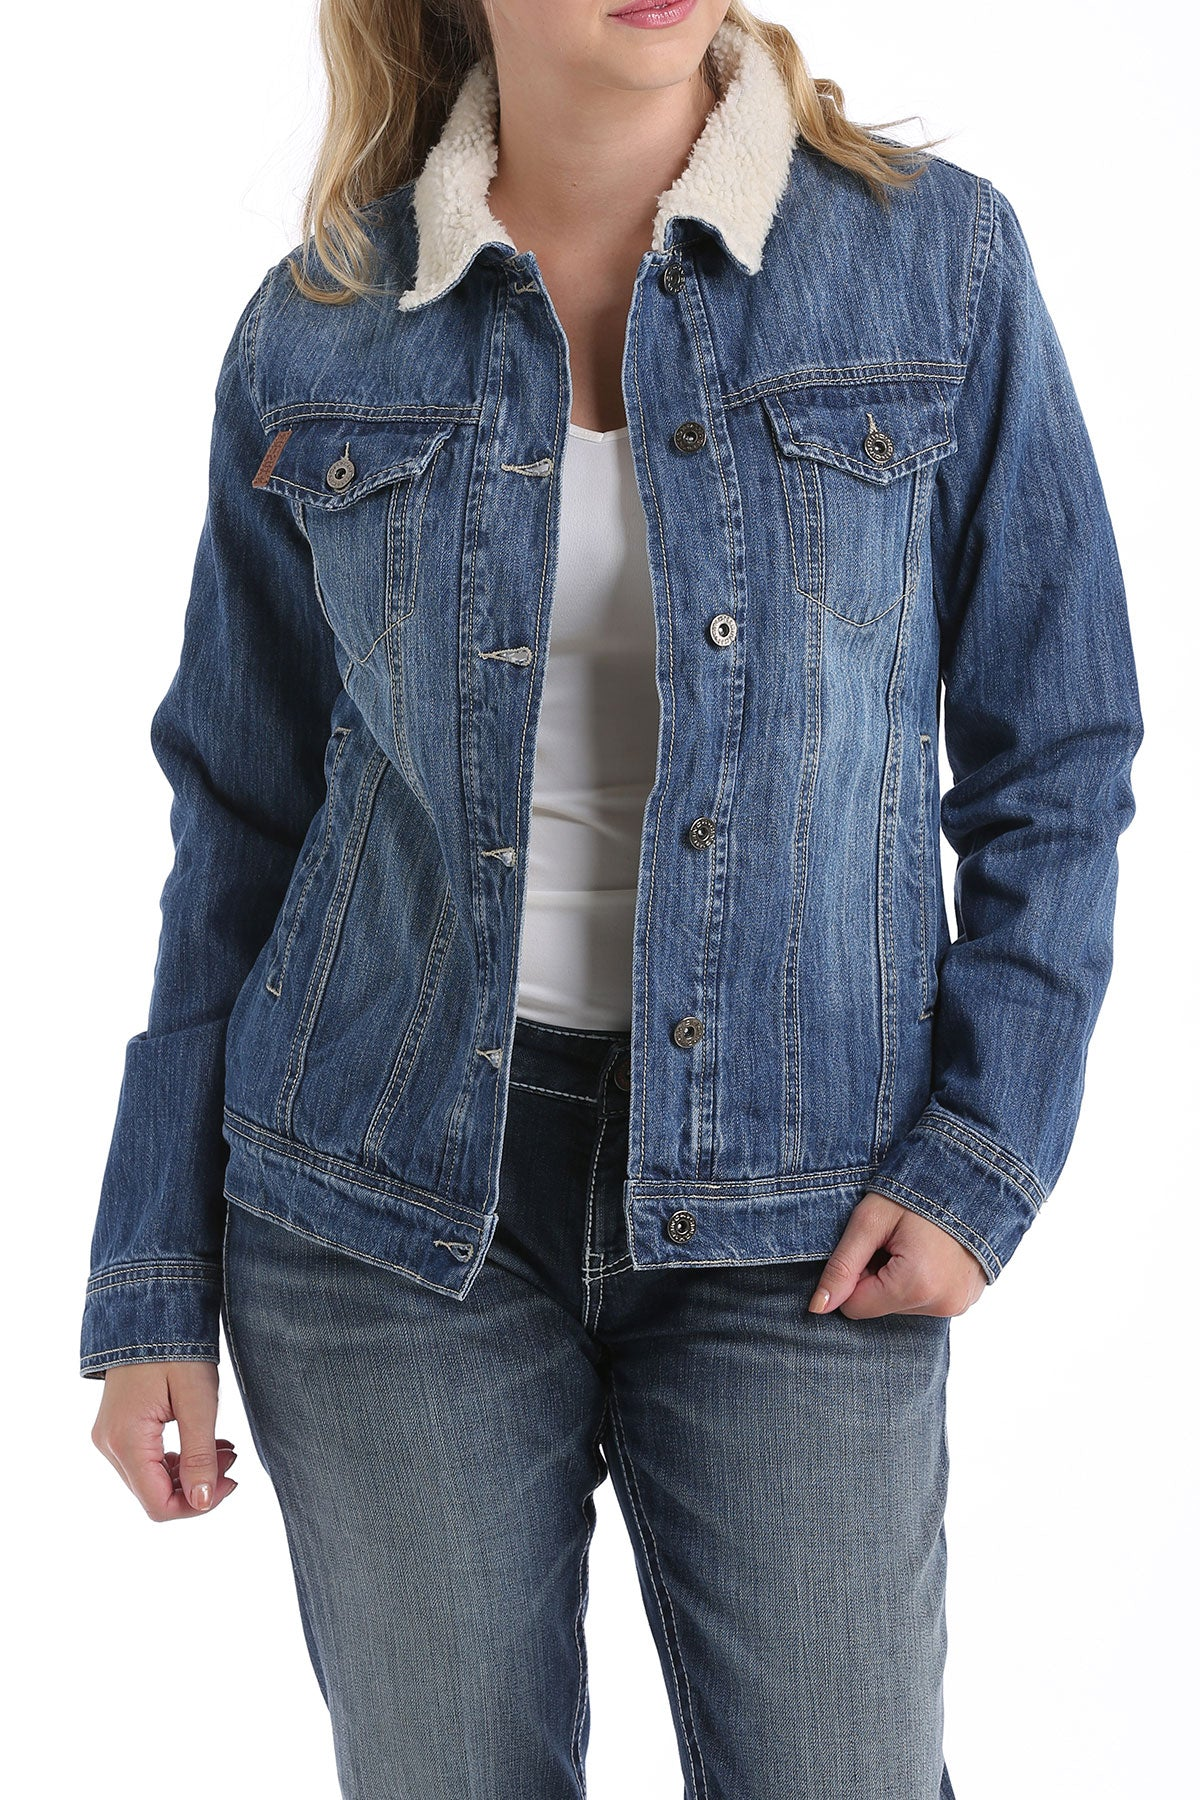 'Cinch' MAJ9878001 - Women's Denim Trucker Jacket - Denim